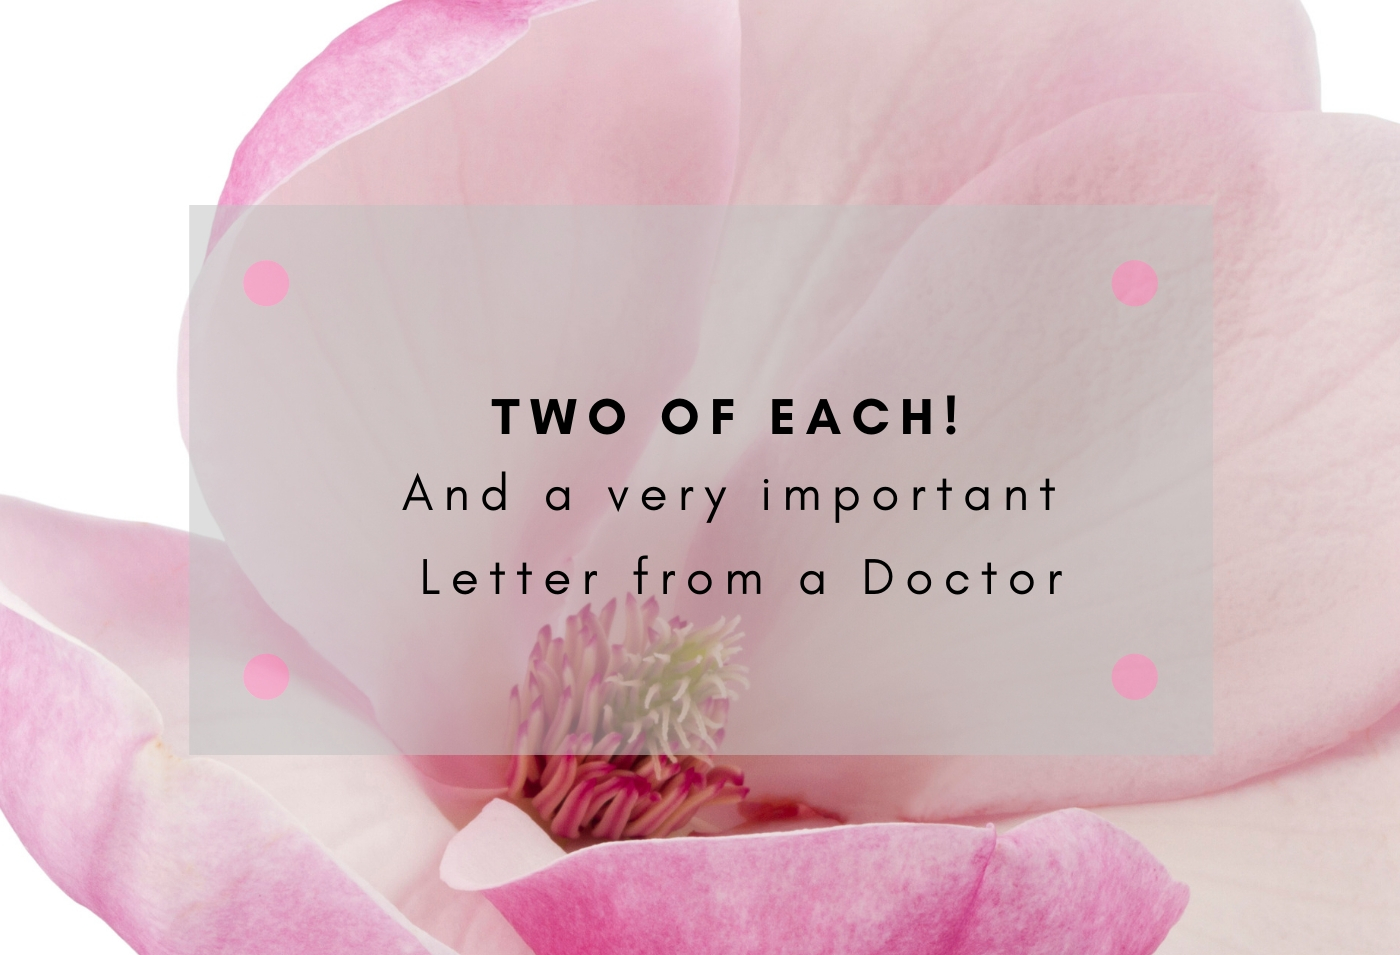 Two of each and a very important letter from a doctor